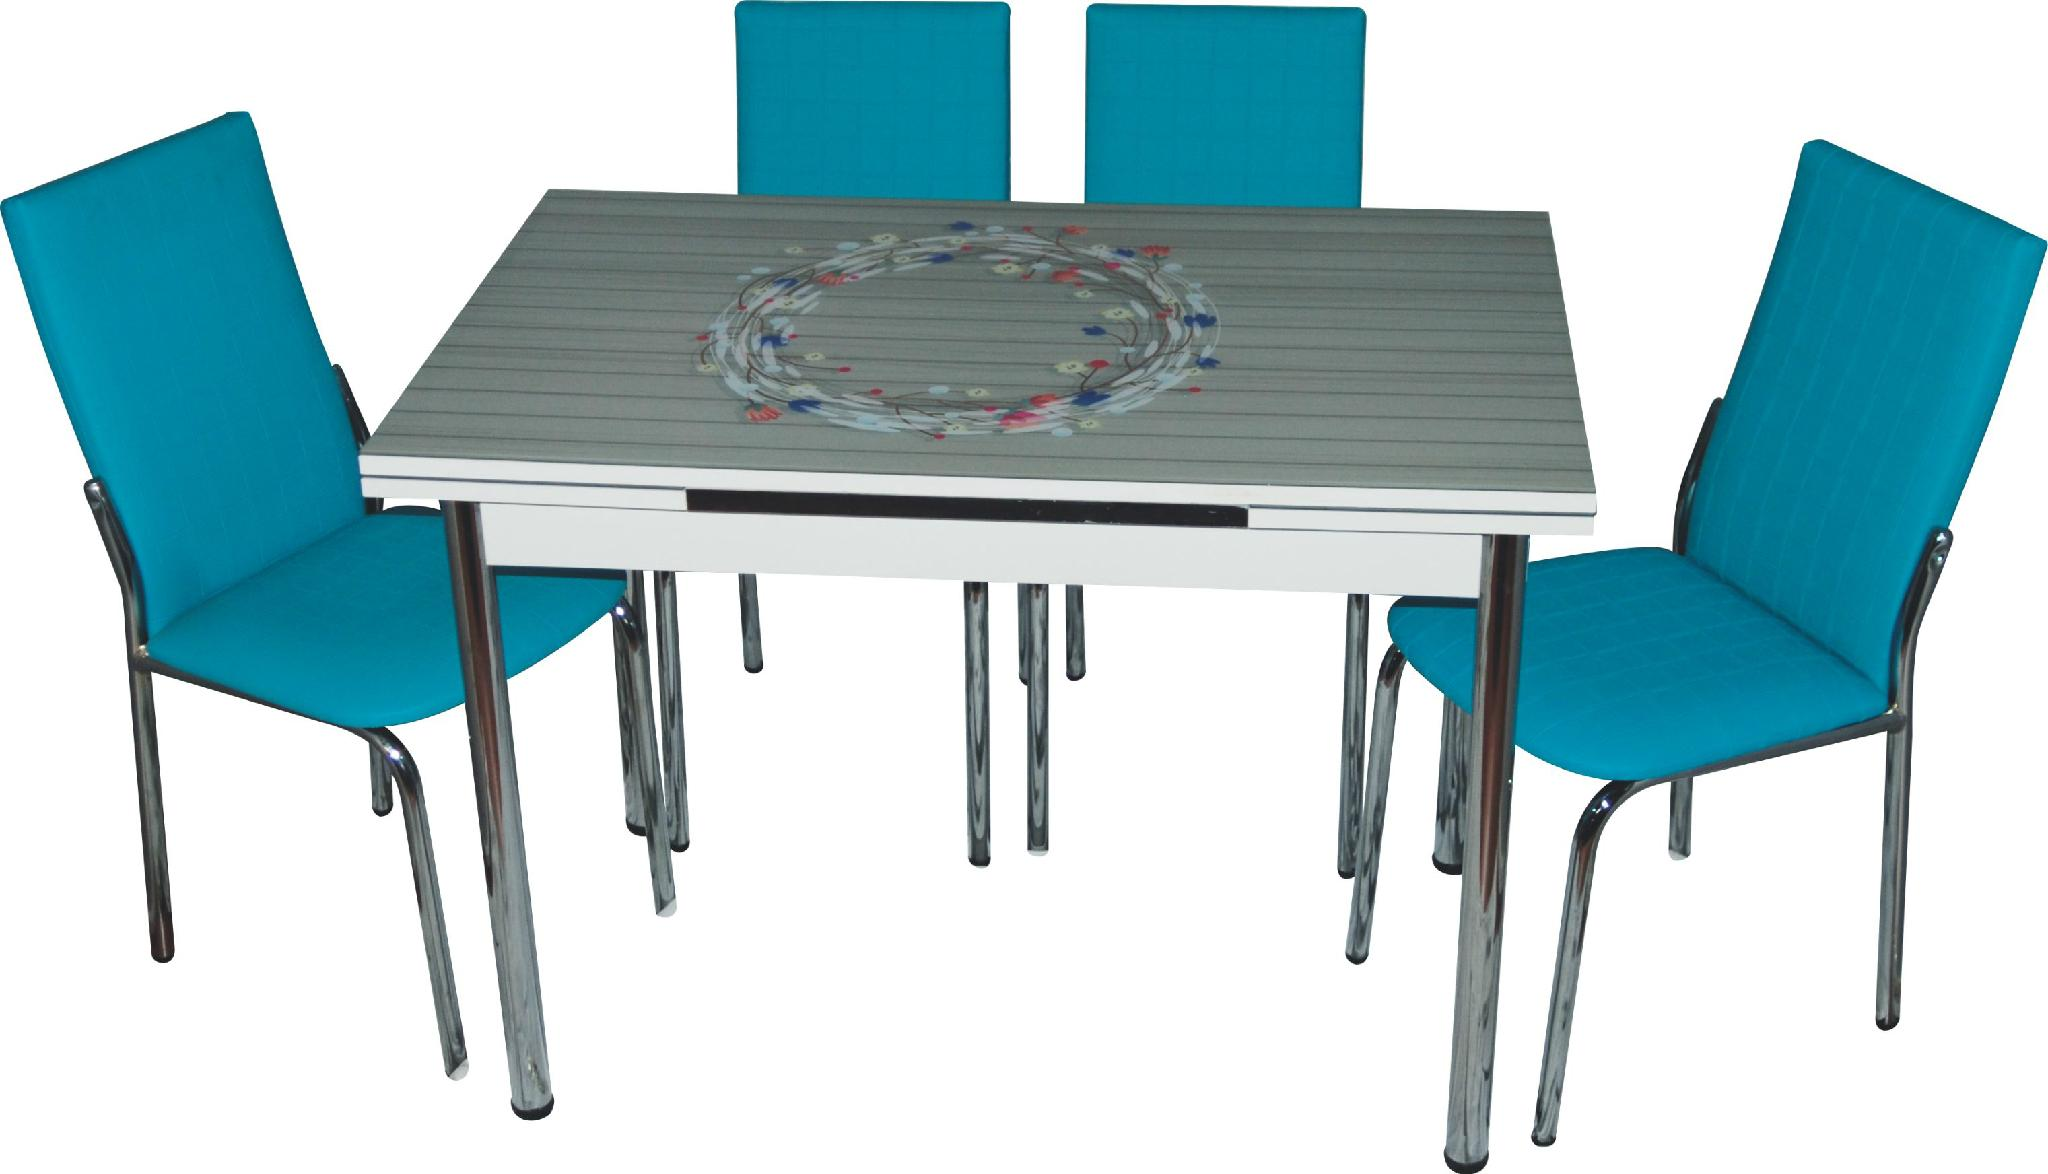 BAF 4015 TABLE - BAF 397 CHAIR 3